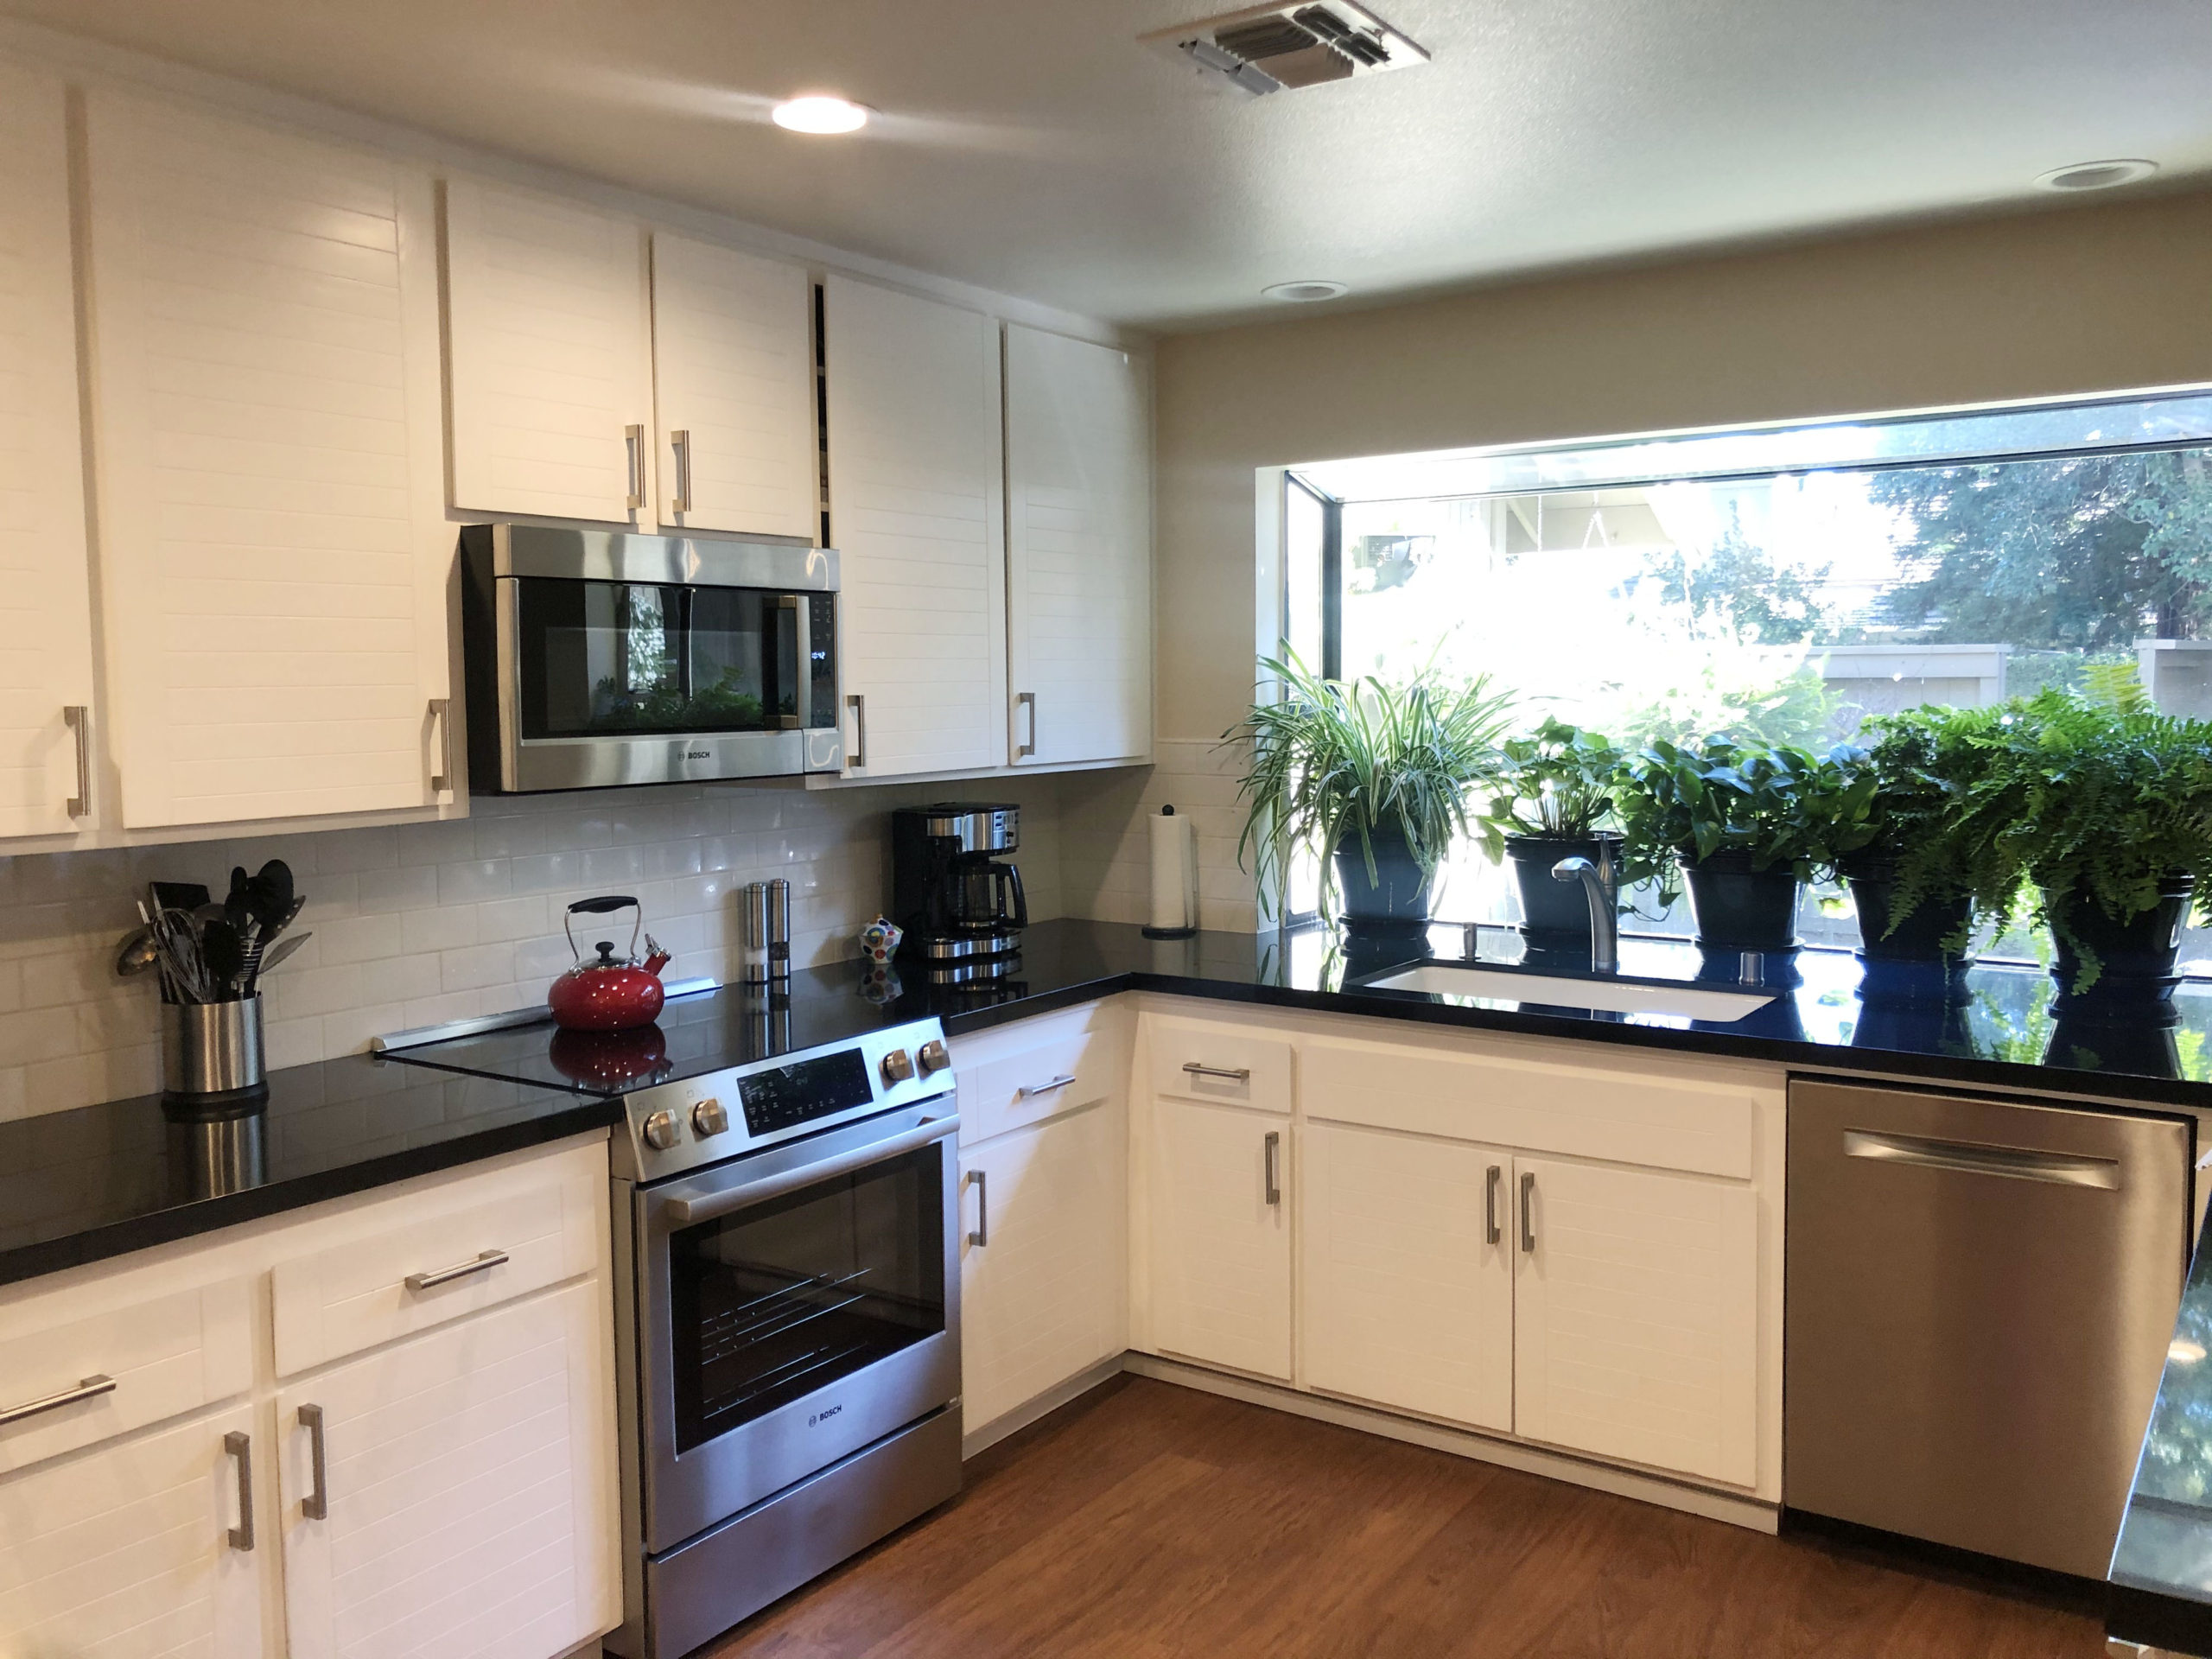 Gallery - Buy Direct Cabinets & Countertops